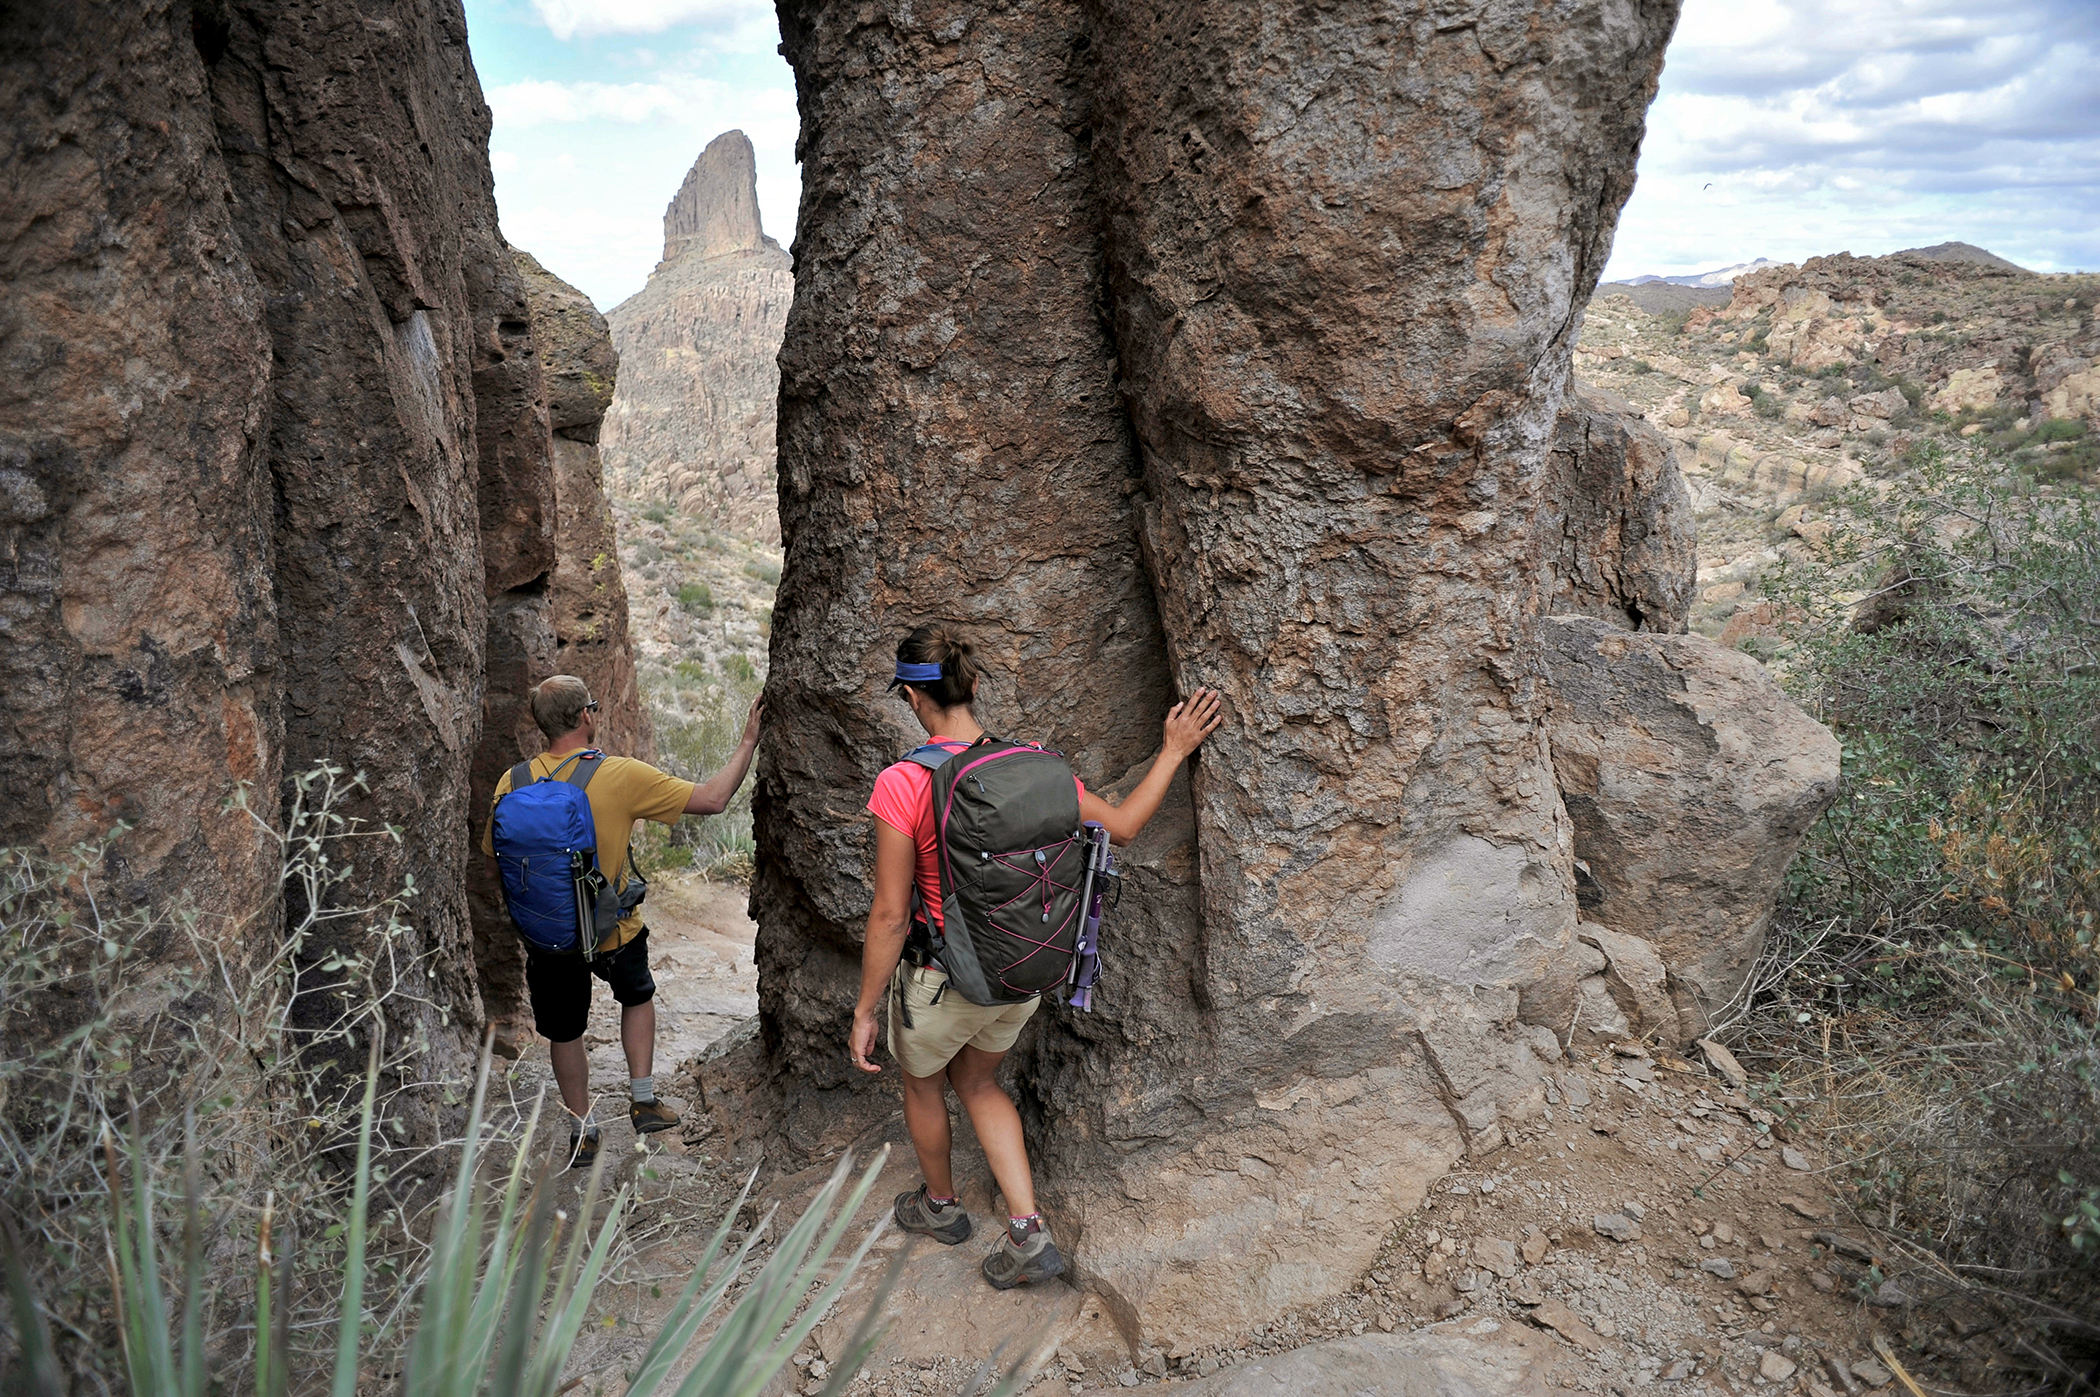 Hikers on the Fremont Saddle on the popular Peralta Trail in the Superstition Wilderness Area, Tonto National Forest near Mesa, Arizona